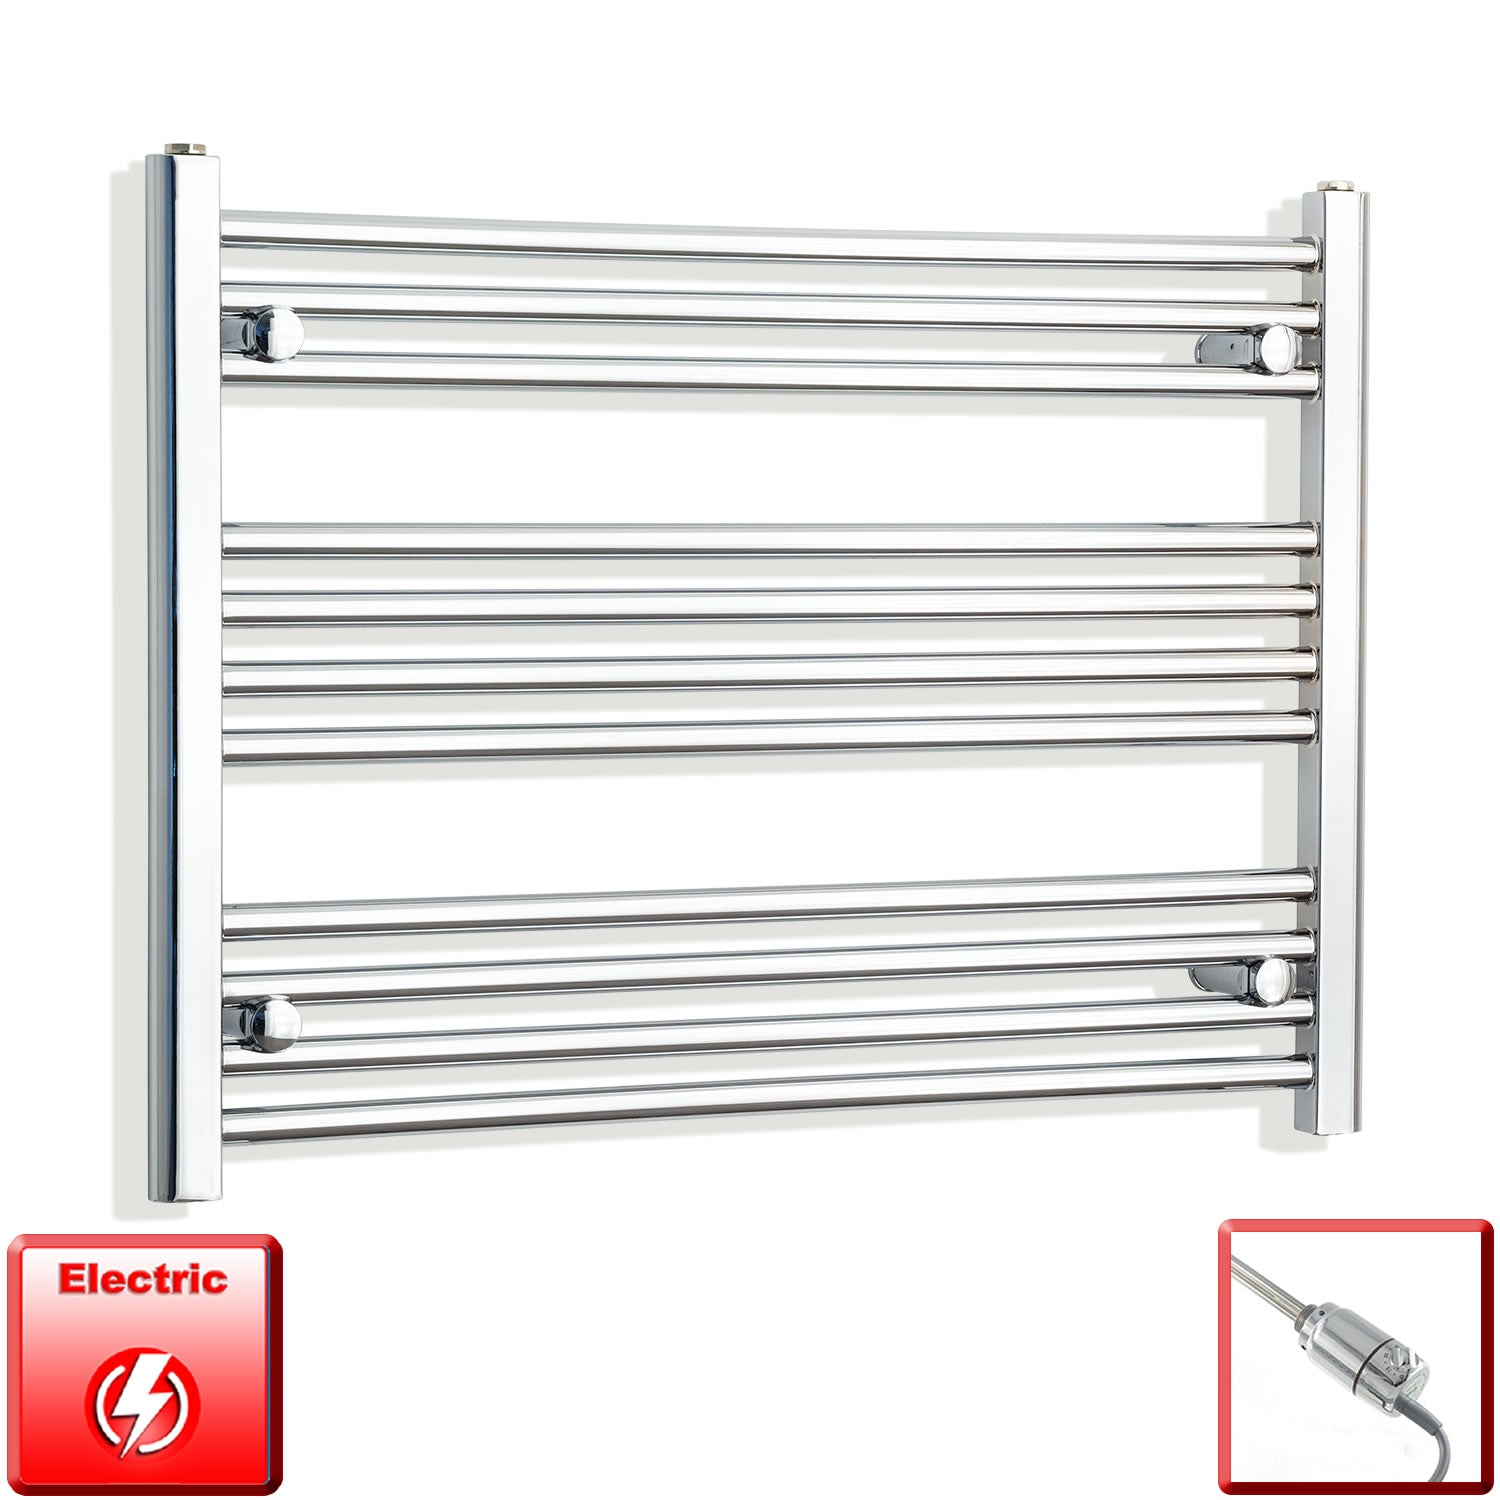 900mm Wide 600mm High Pre-Filled Chrome Electric Towel Rail Radiator With Thermostatic GT Element